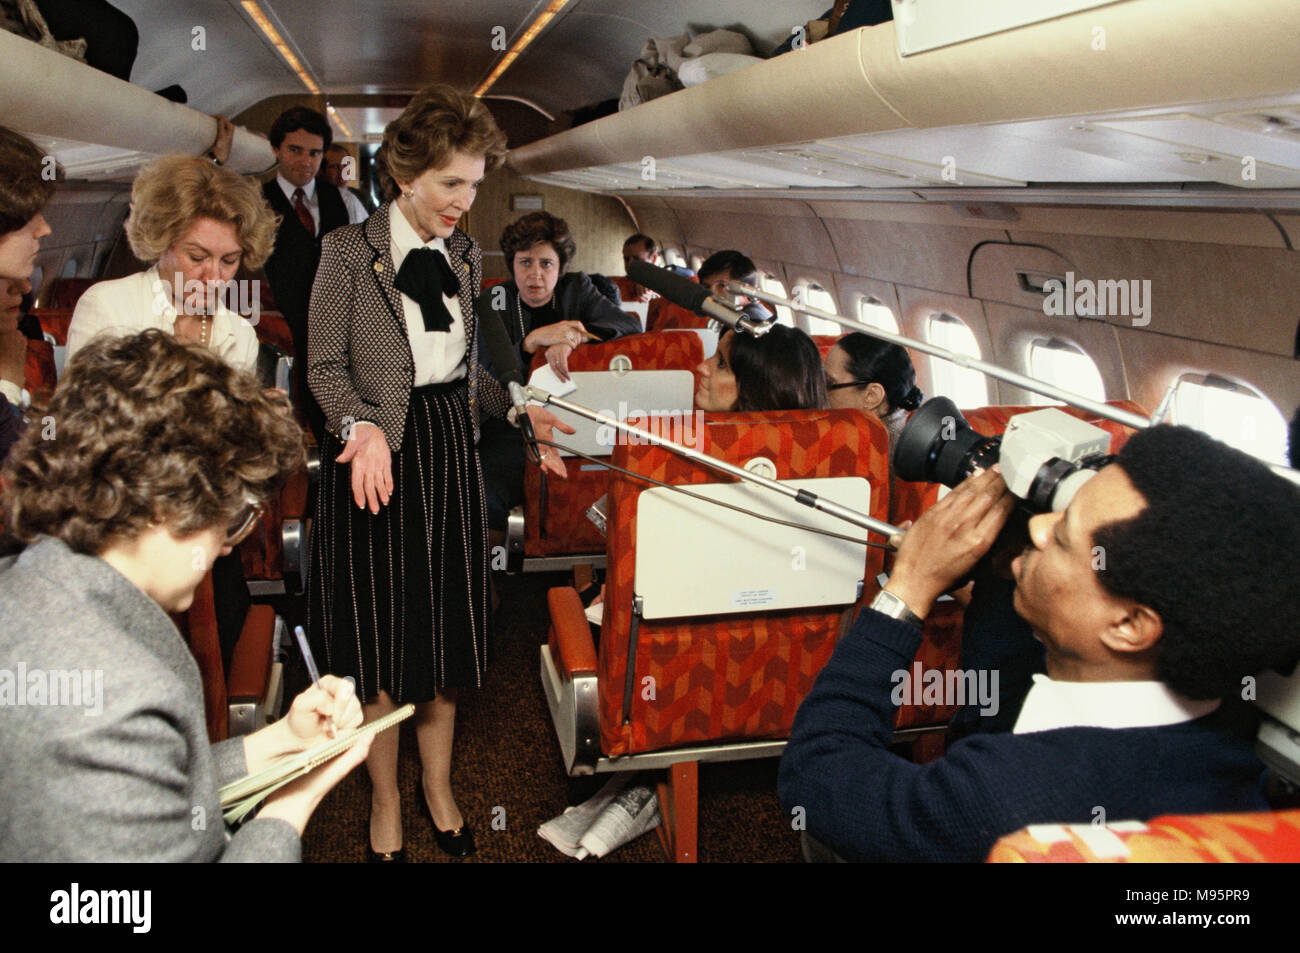 "First Lady Nancy Reagan talking to press on the plane to  Dallas, Texas in February 1982.  This is part of an anti drug trip, ""Just Say No"" for the First Lady  Photograph by Dennis Brack - Stock Image"